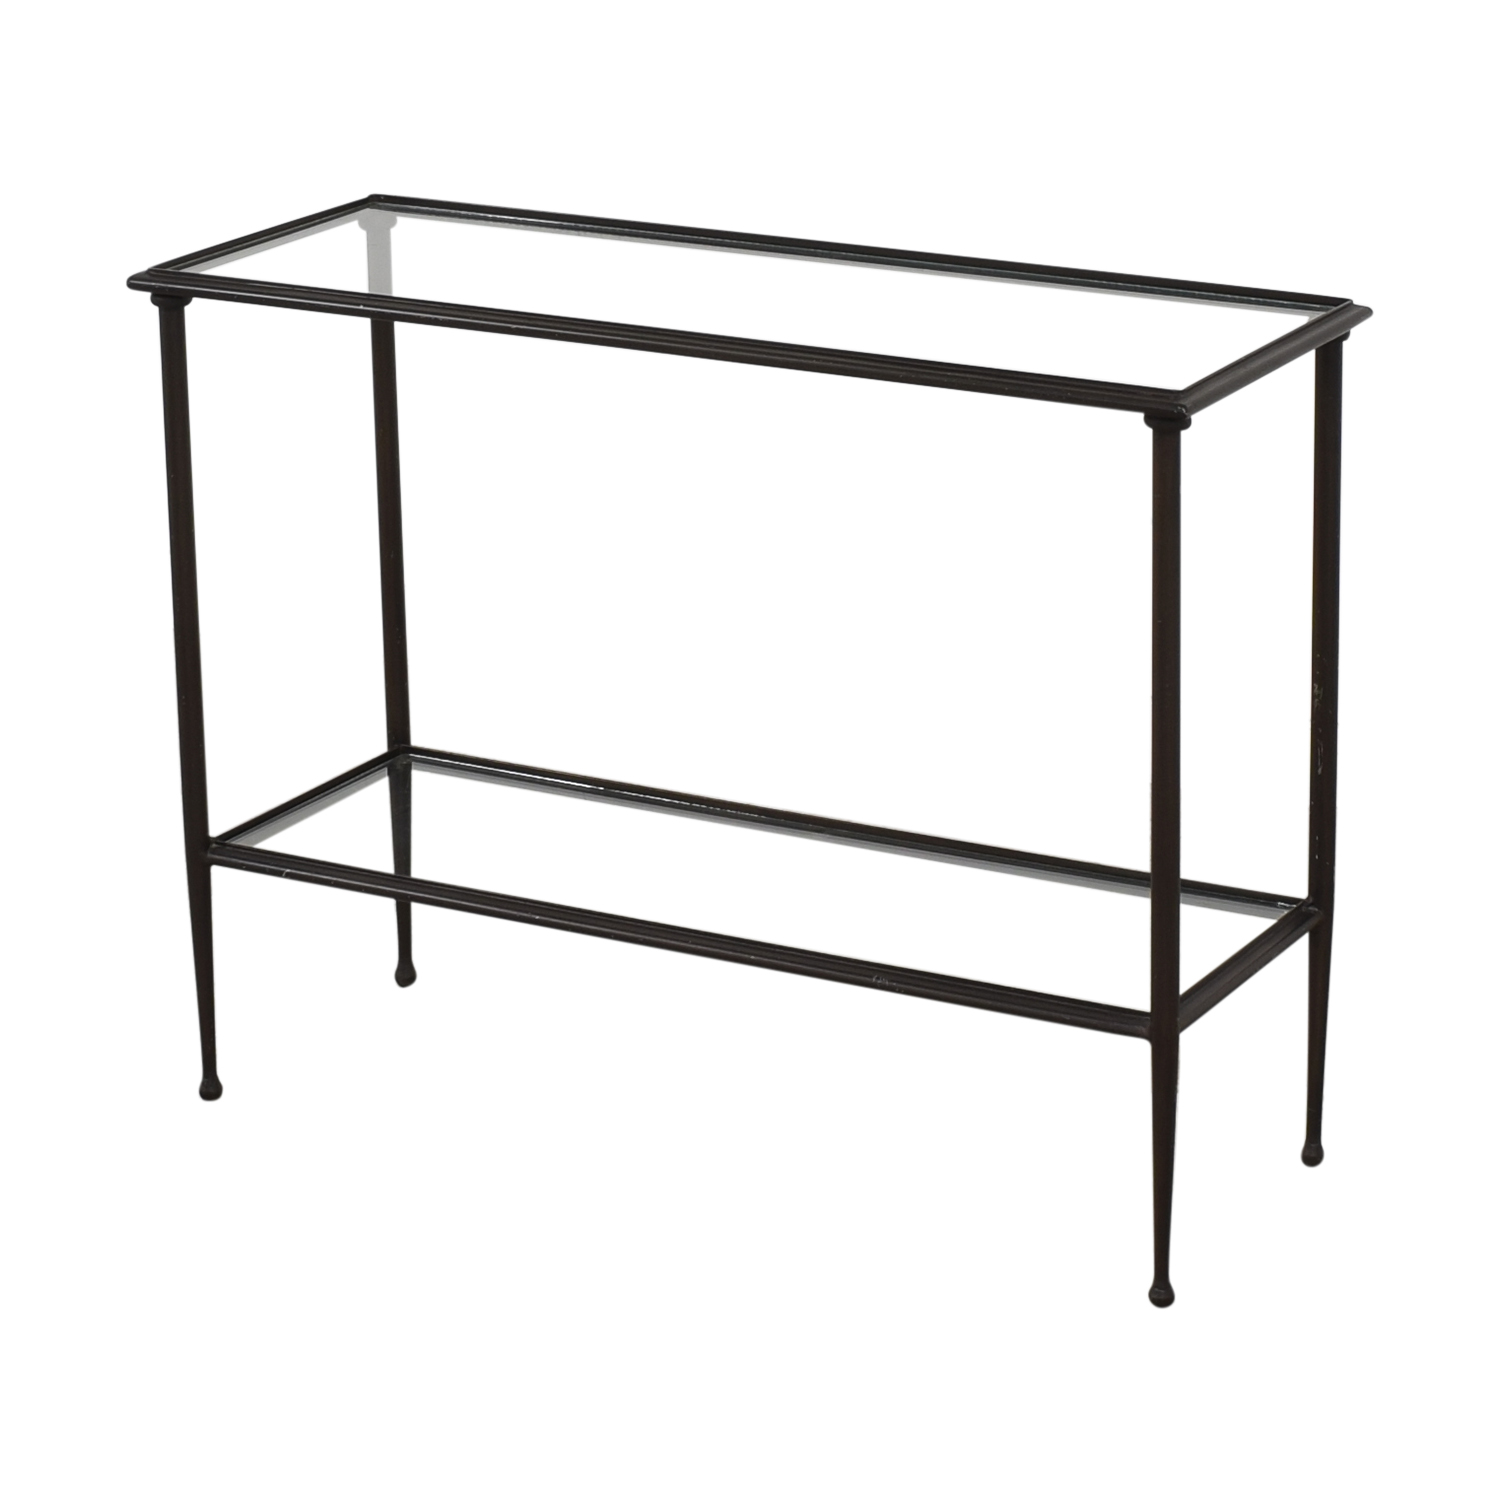 shop Crate & Barrel Glass and Iron Console Table Crate & Barrel Accent Tables